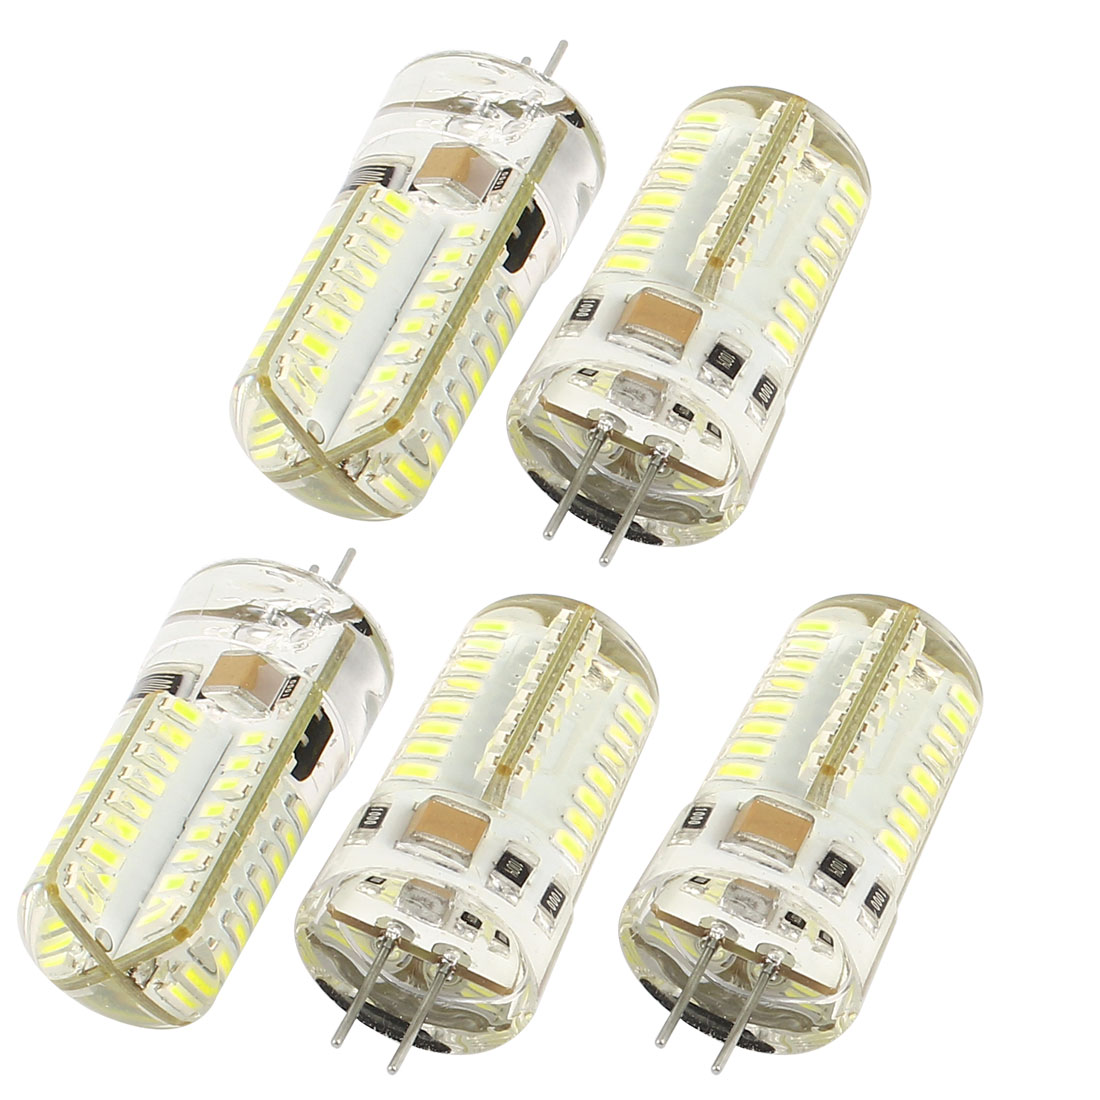 5 Pcs Energy Saving 180LM G4 3014 SMD 3W 64 LED Bulb Lamp Corn Light White